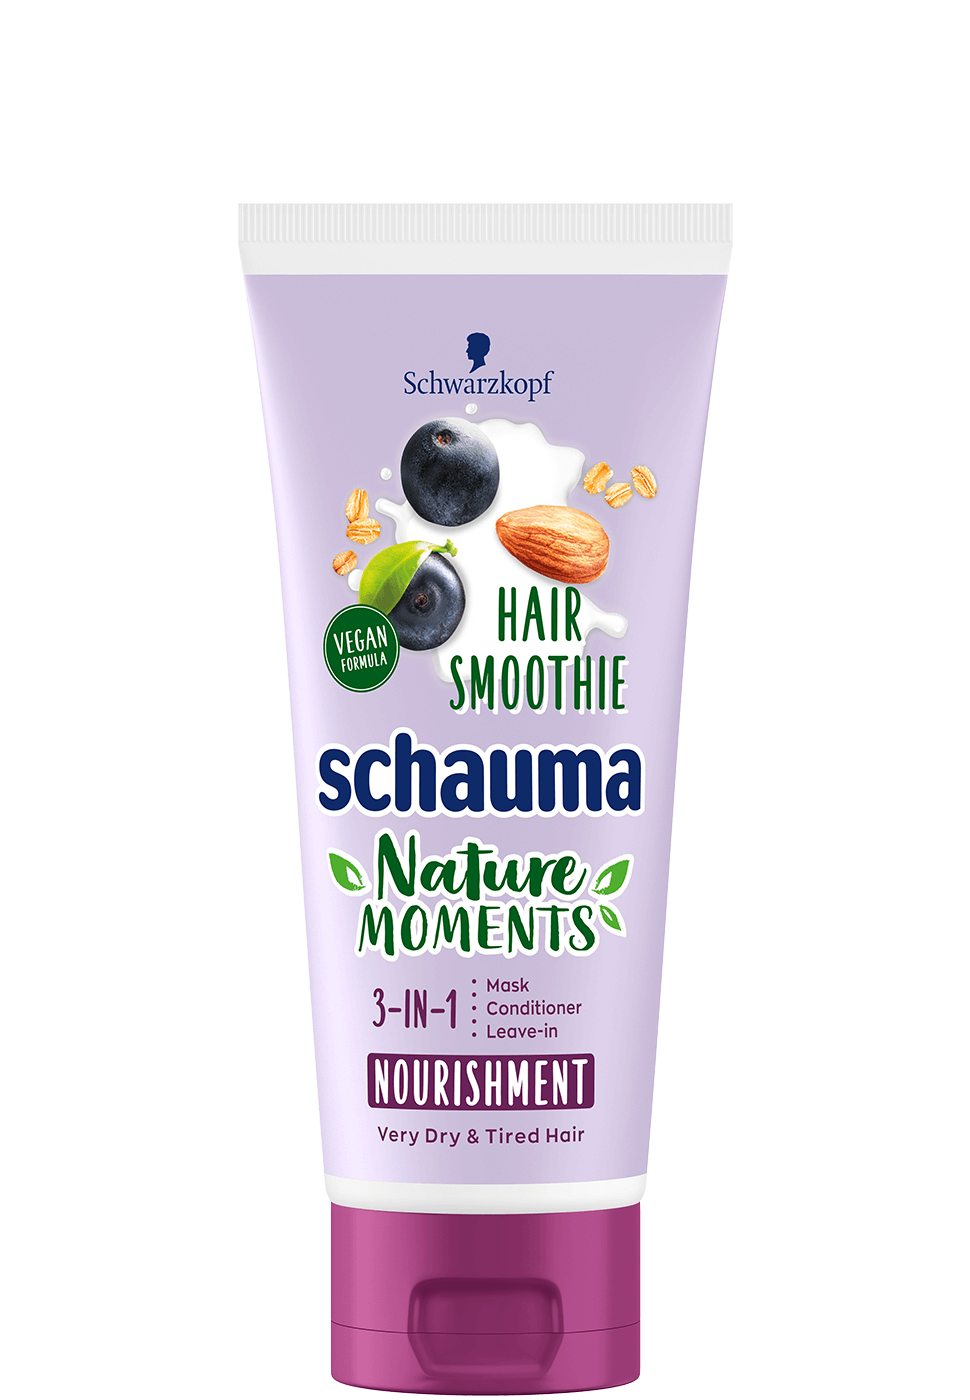 schauma_com_nature_moments_hair_smoothie_nourishment_970x1400